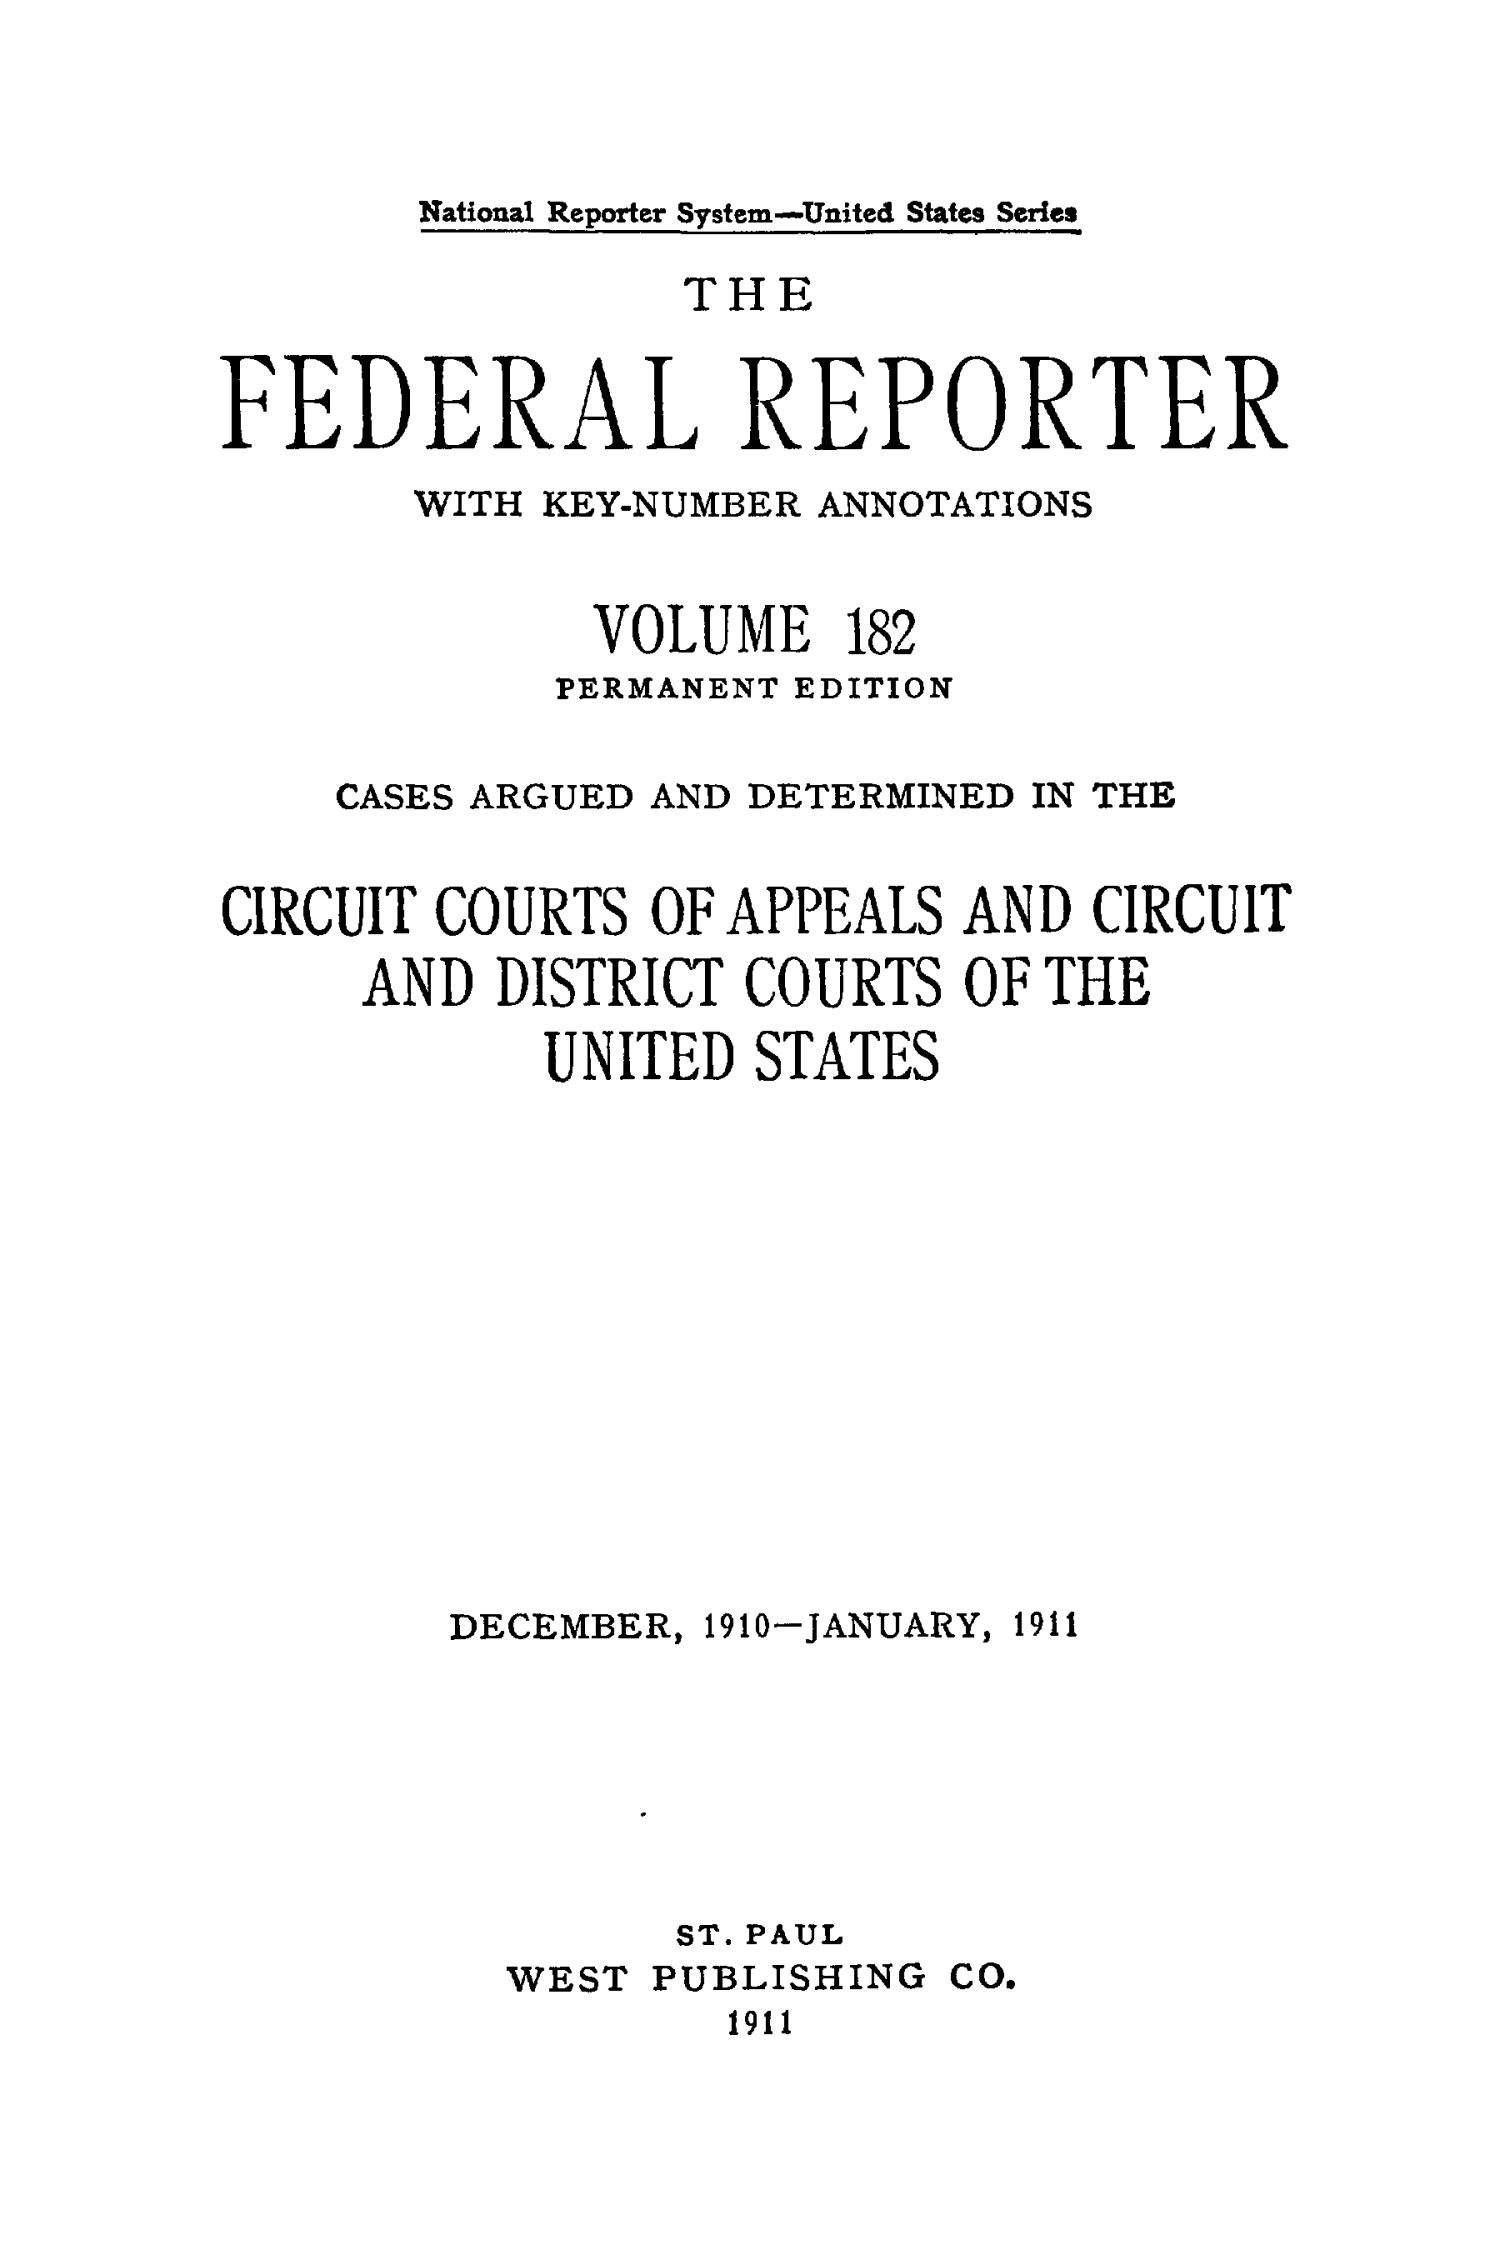 The Federal Reporter with Key-Number Annotations, Volume 182: Cases Argued and Determined in the Circuit Courts of Appeals and Circuit and District Courts of the United States, December, 1910-January, 1911.                                                                                                      Title Page